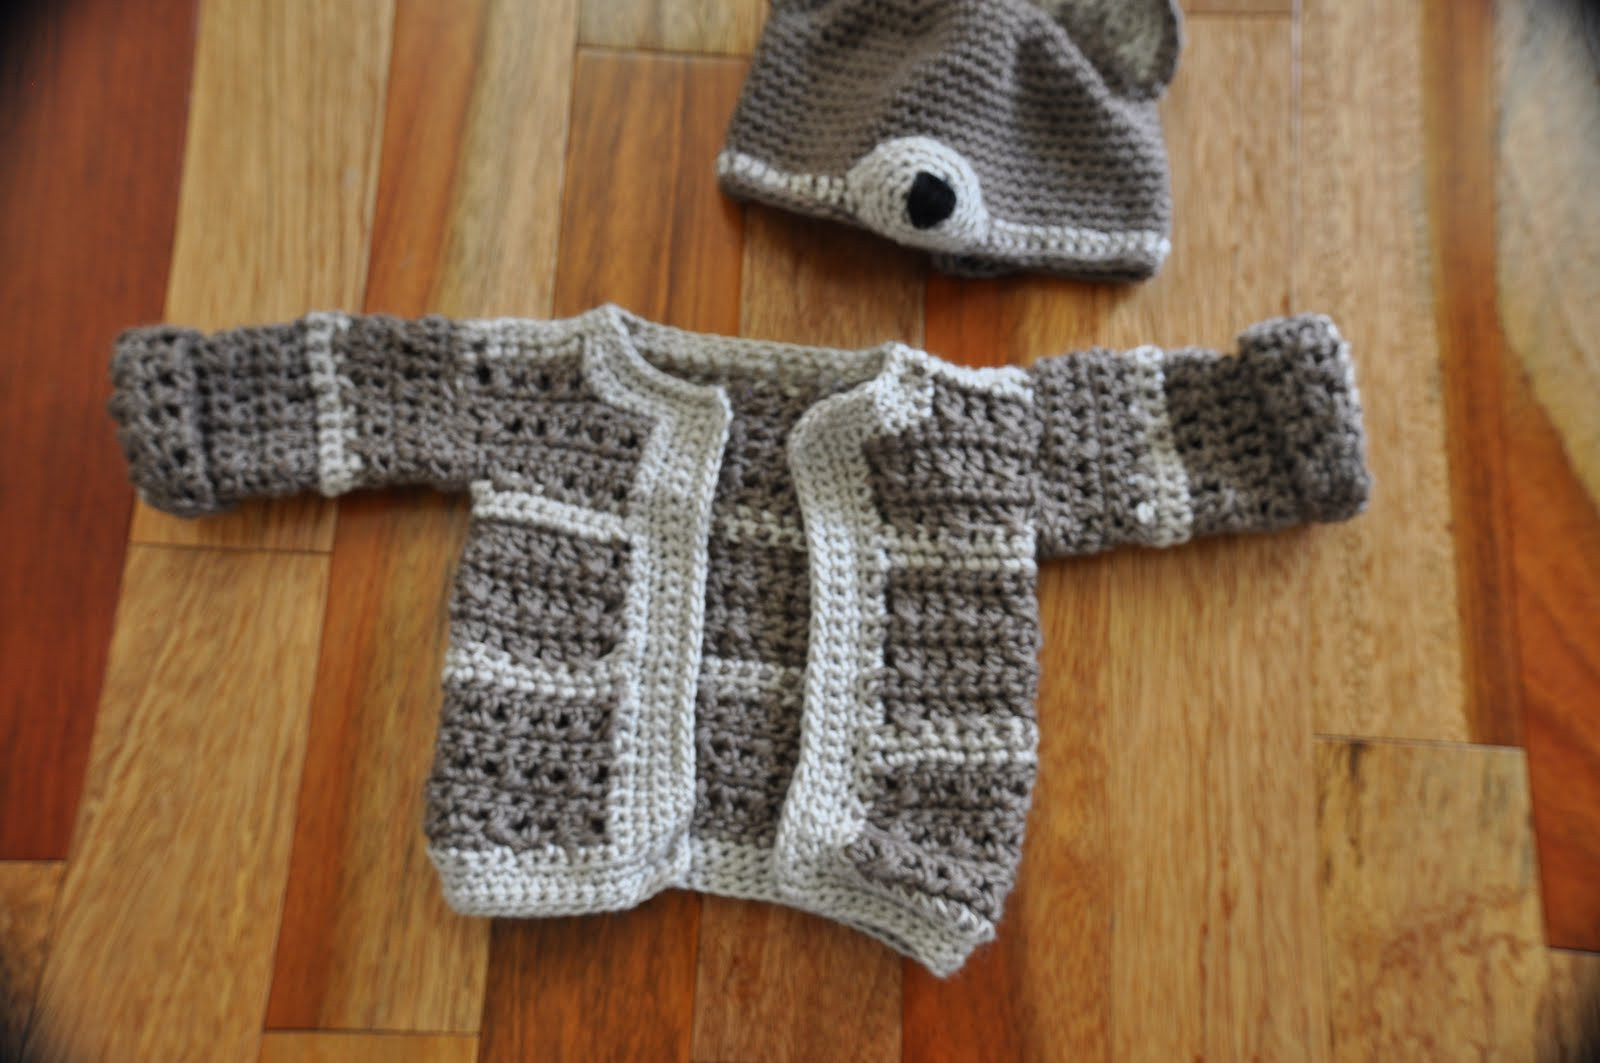 Unique Free Cardigan Patterns Crochet Crochet and Knitting Patterns Free Crochet toddler Sweater Patterns Of Charming 50 Models Free Crochet toddler Sweater Patterns